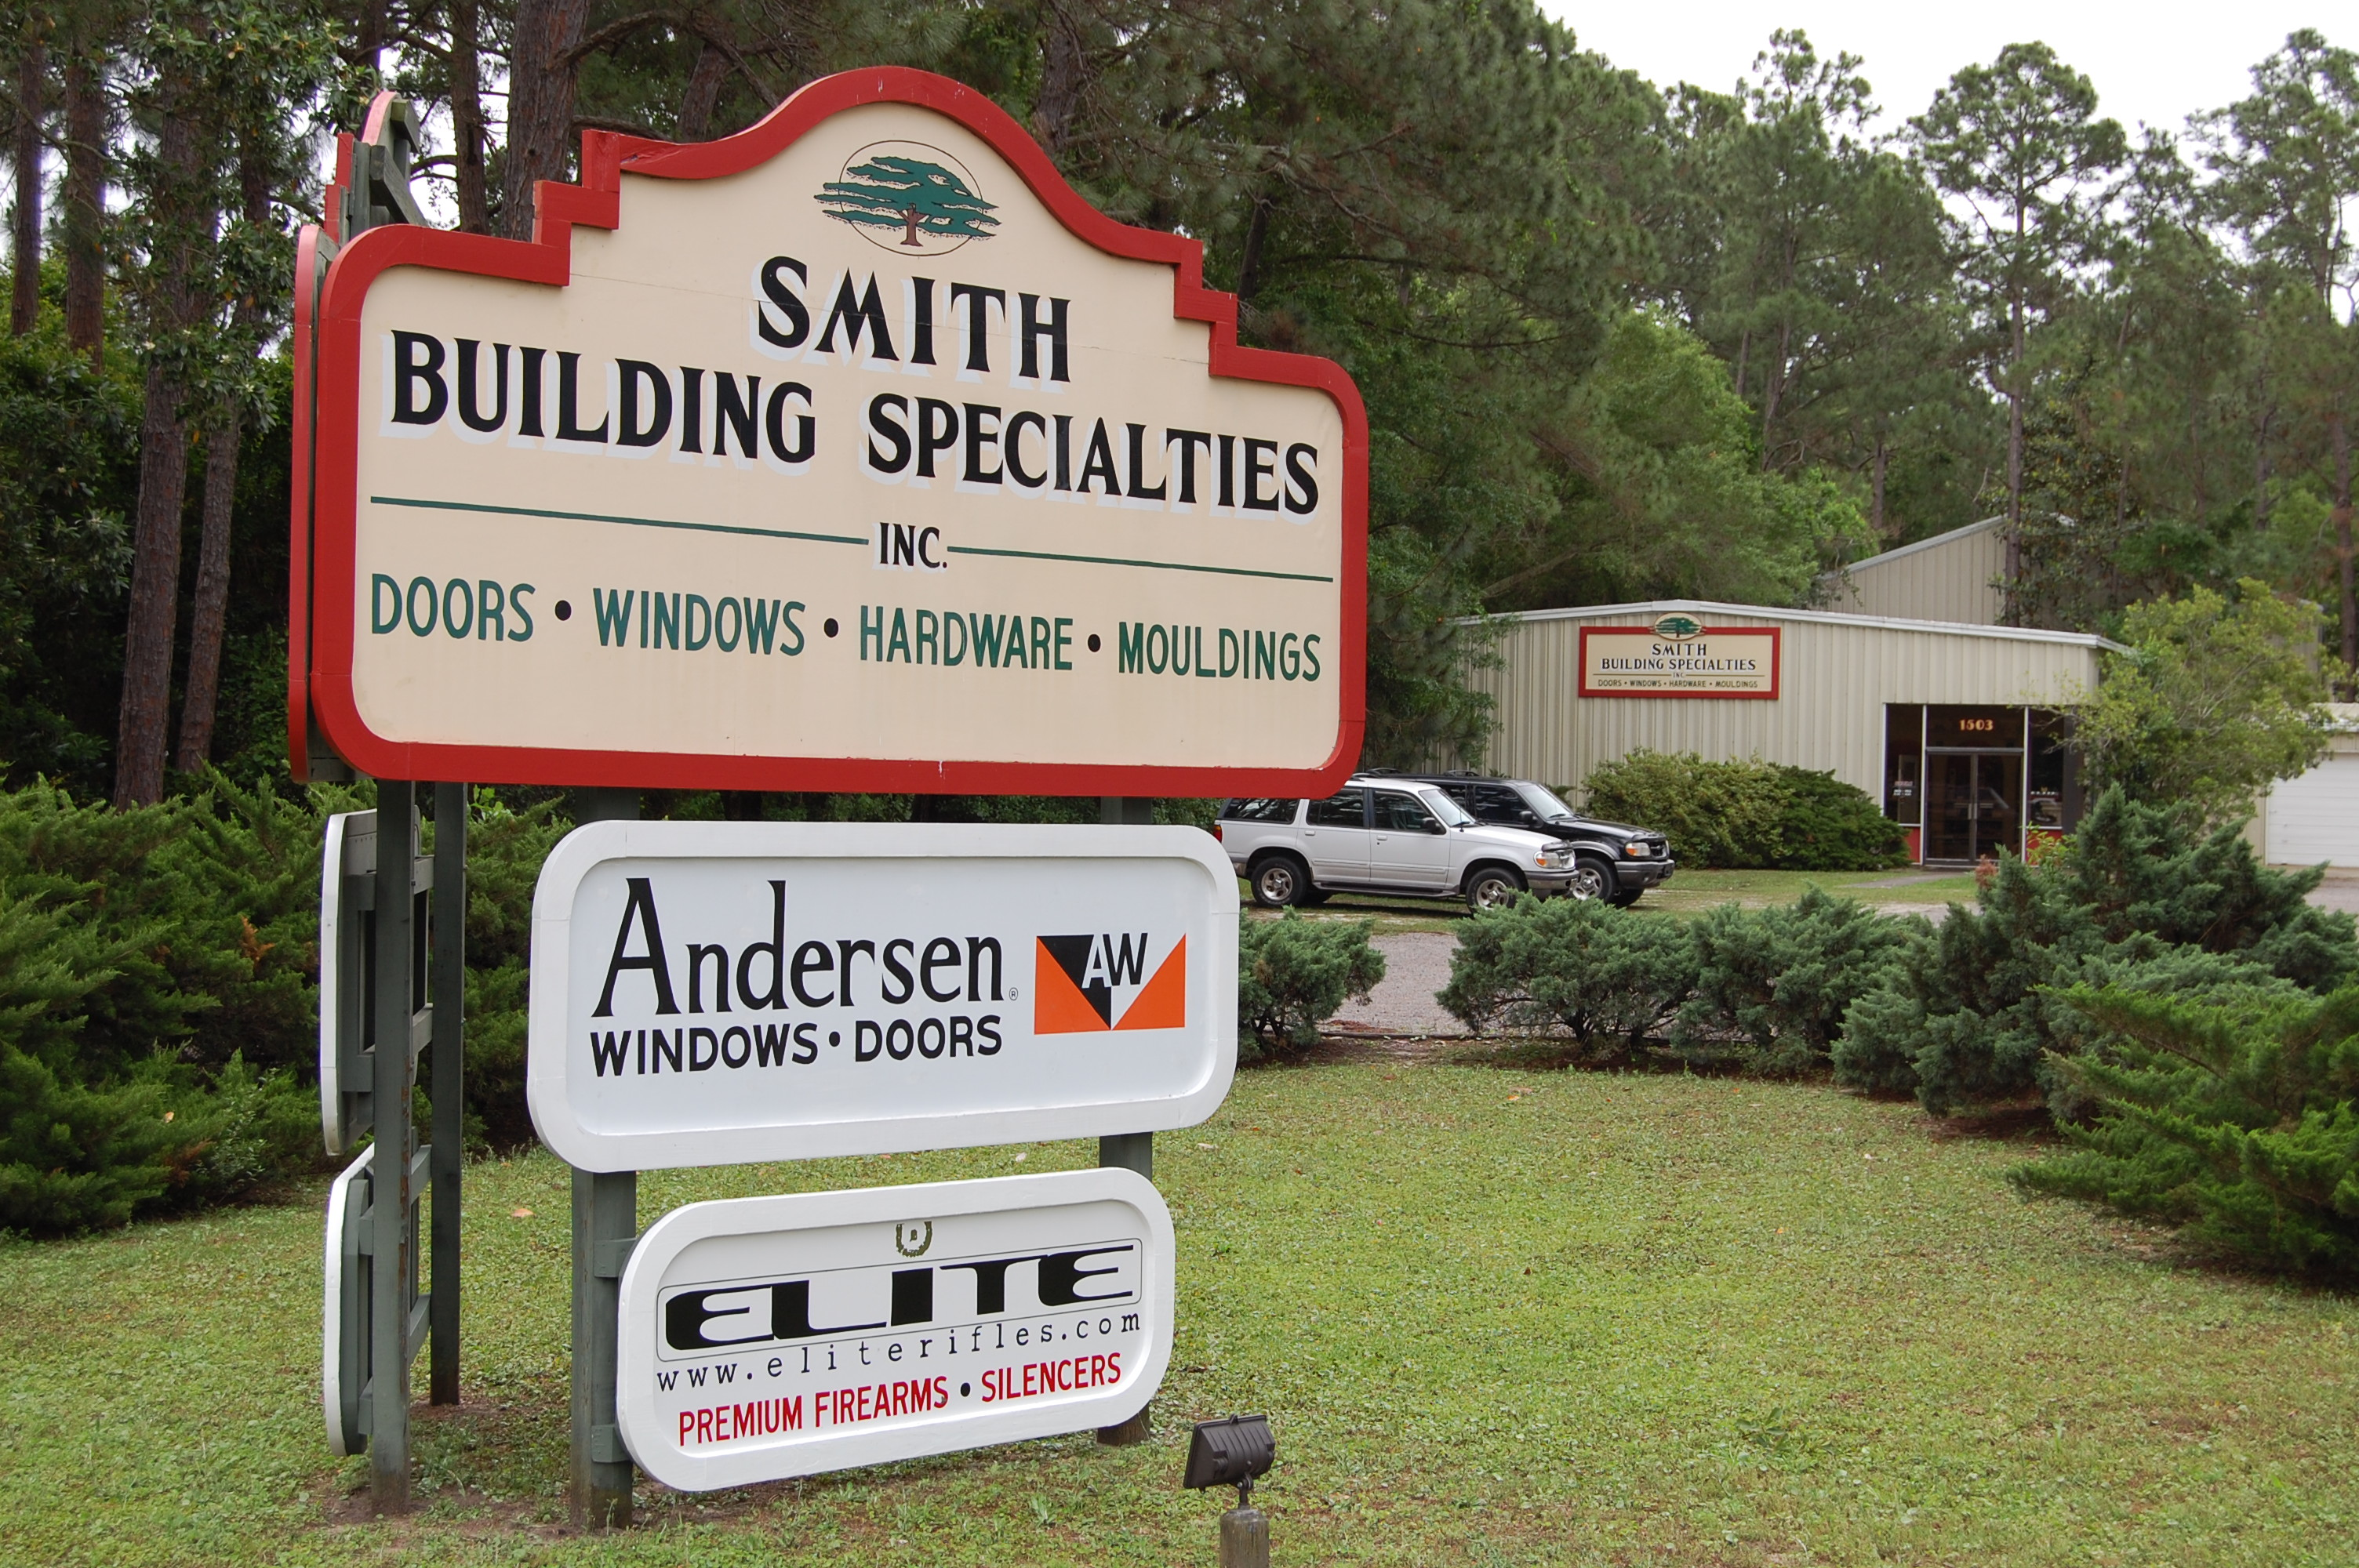 Smith building specialties panama city fl business for Smith house construction